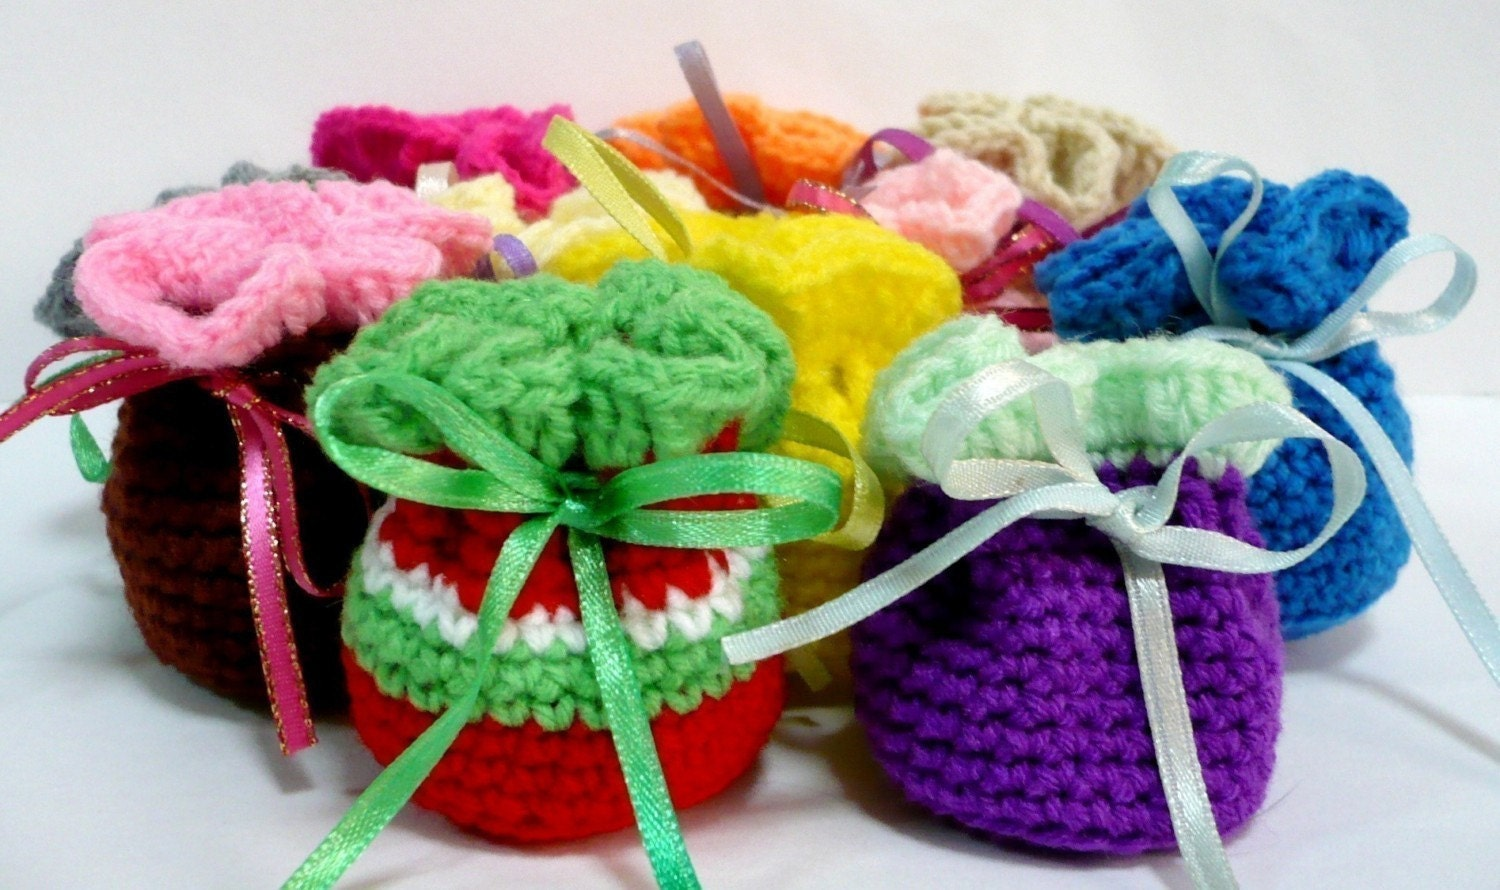 Small Bag Crochet Pattern : Drawstring Pouch Crochet Pattern Small Bag Crochet by melbangel